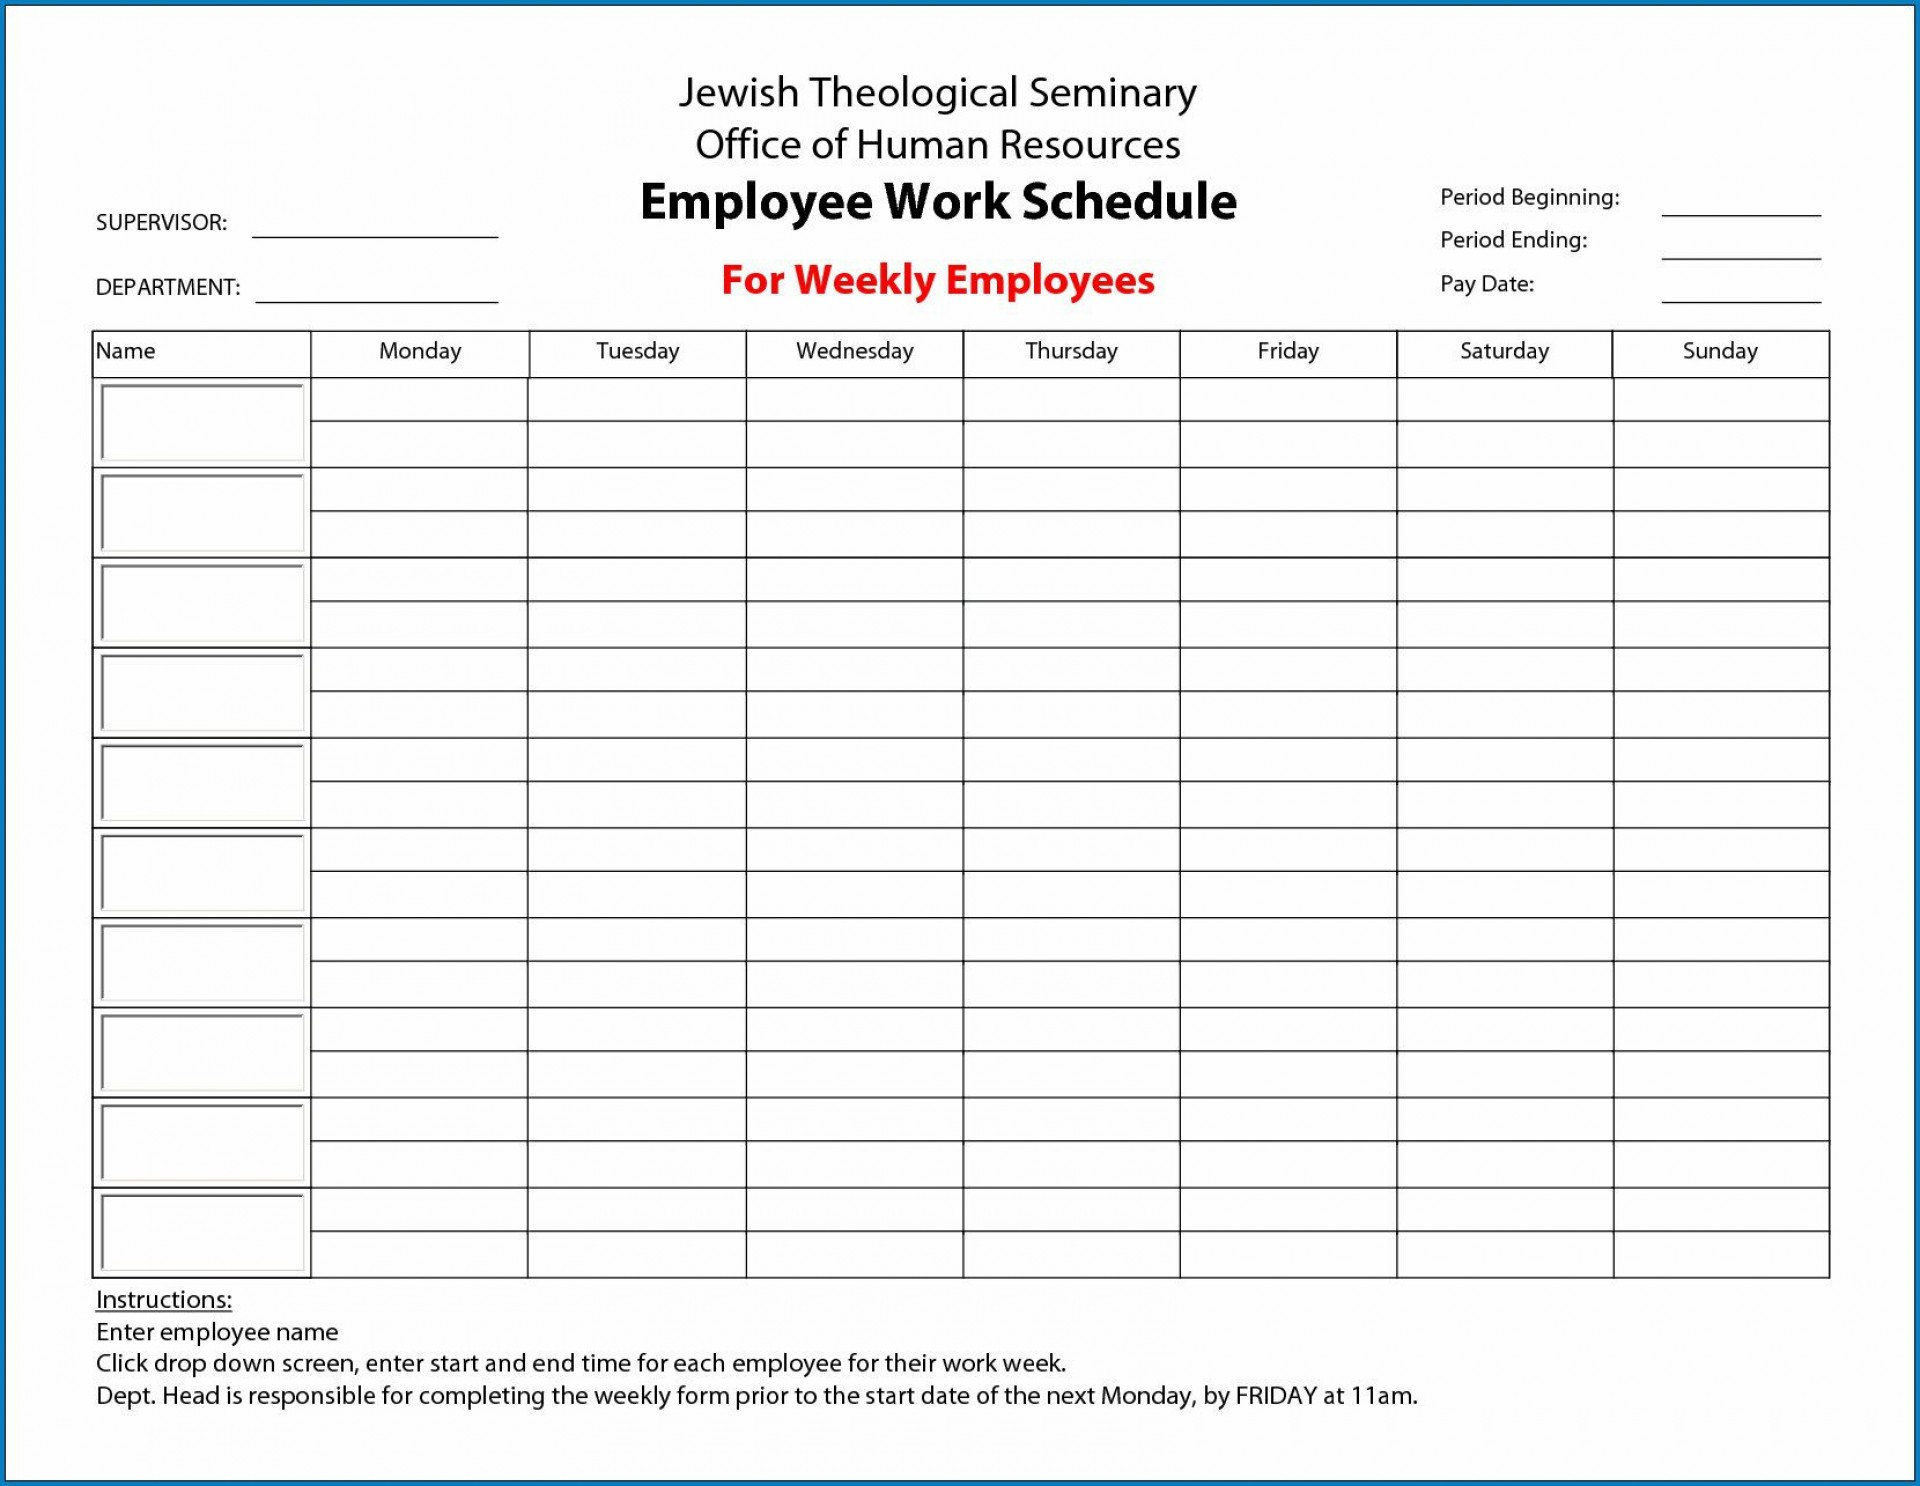 009 Fascinating Employee Schedule Template Free Image  Downloadable Weekly Work Training Excel Shift1920